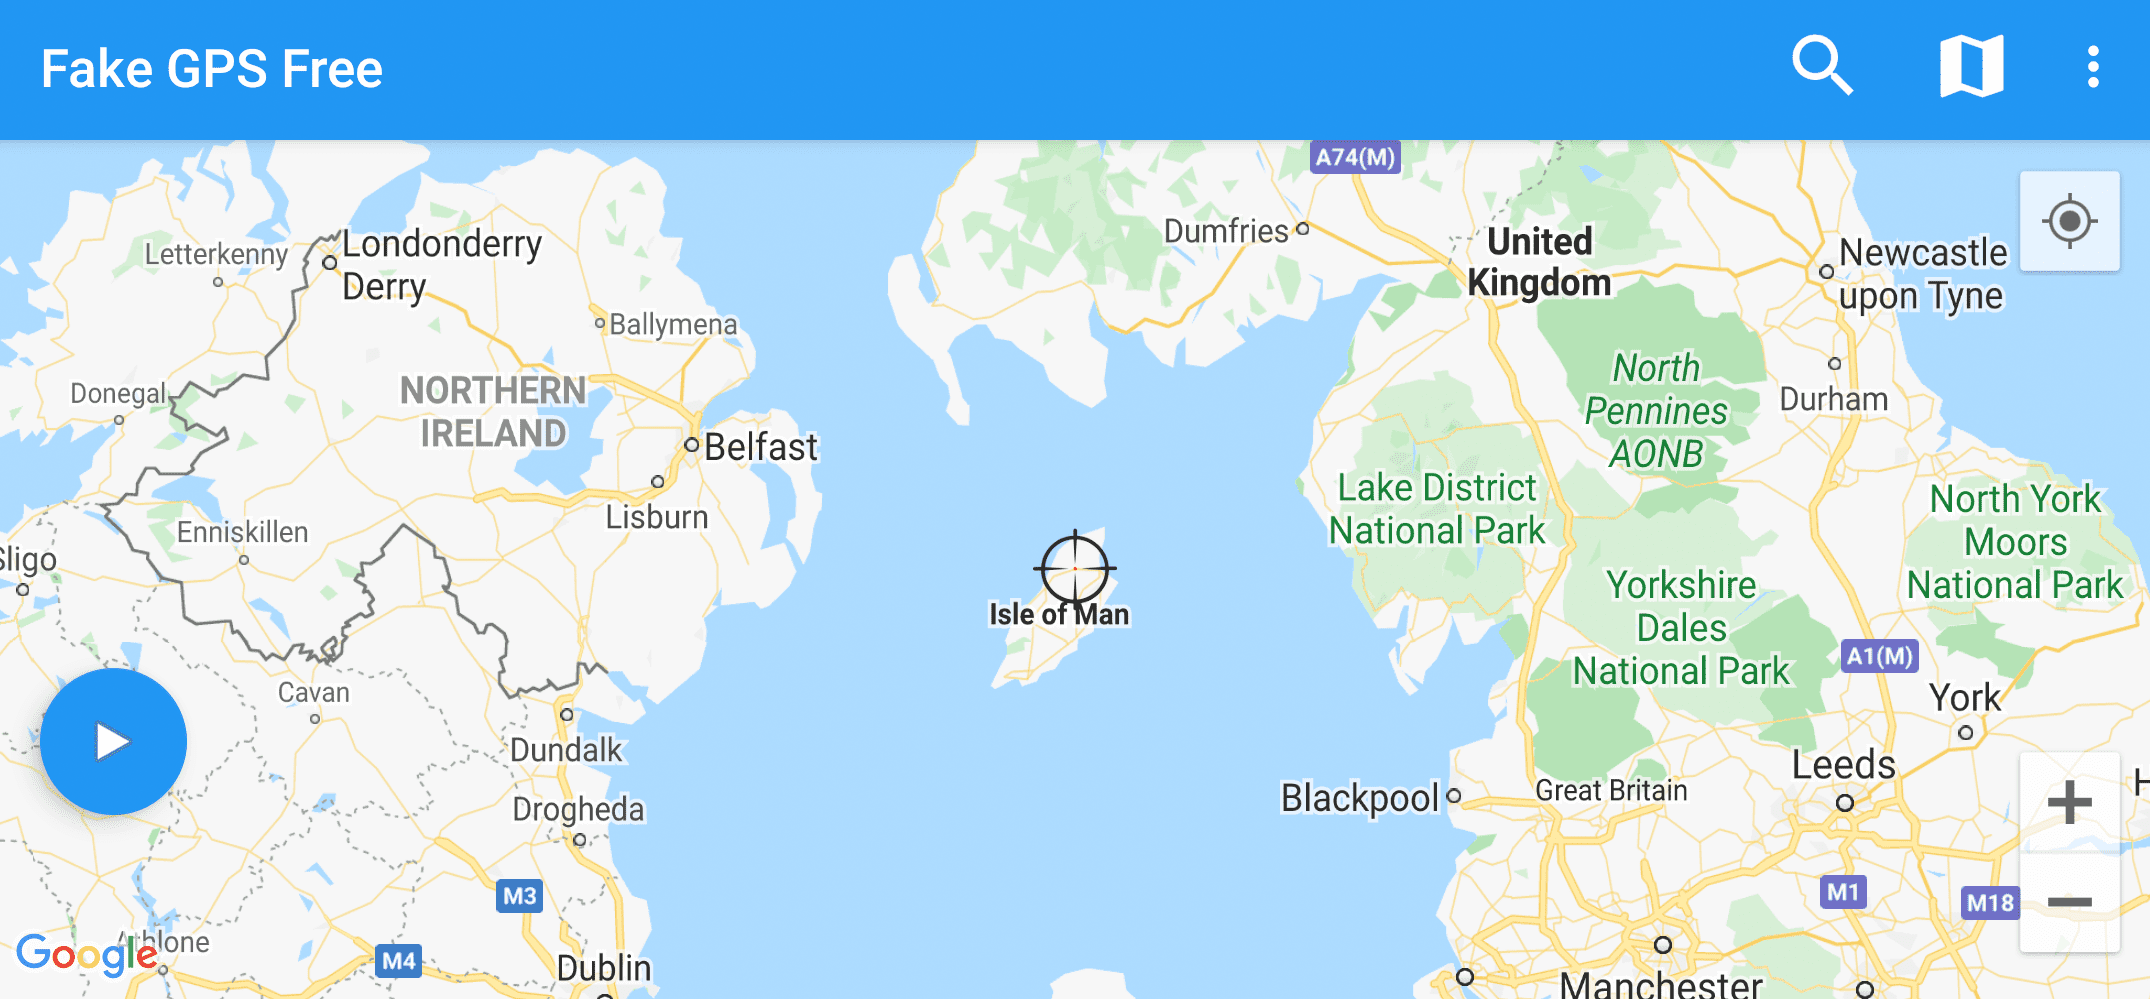 Fake GPS Free Android app map